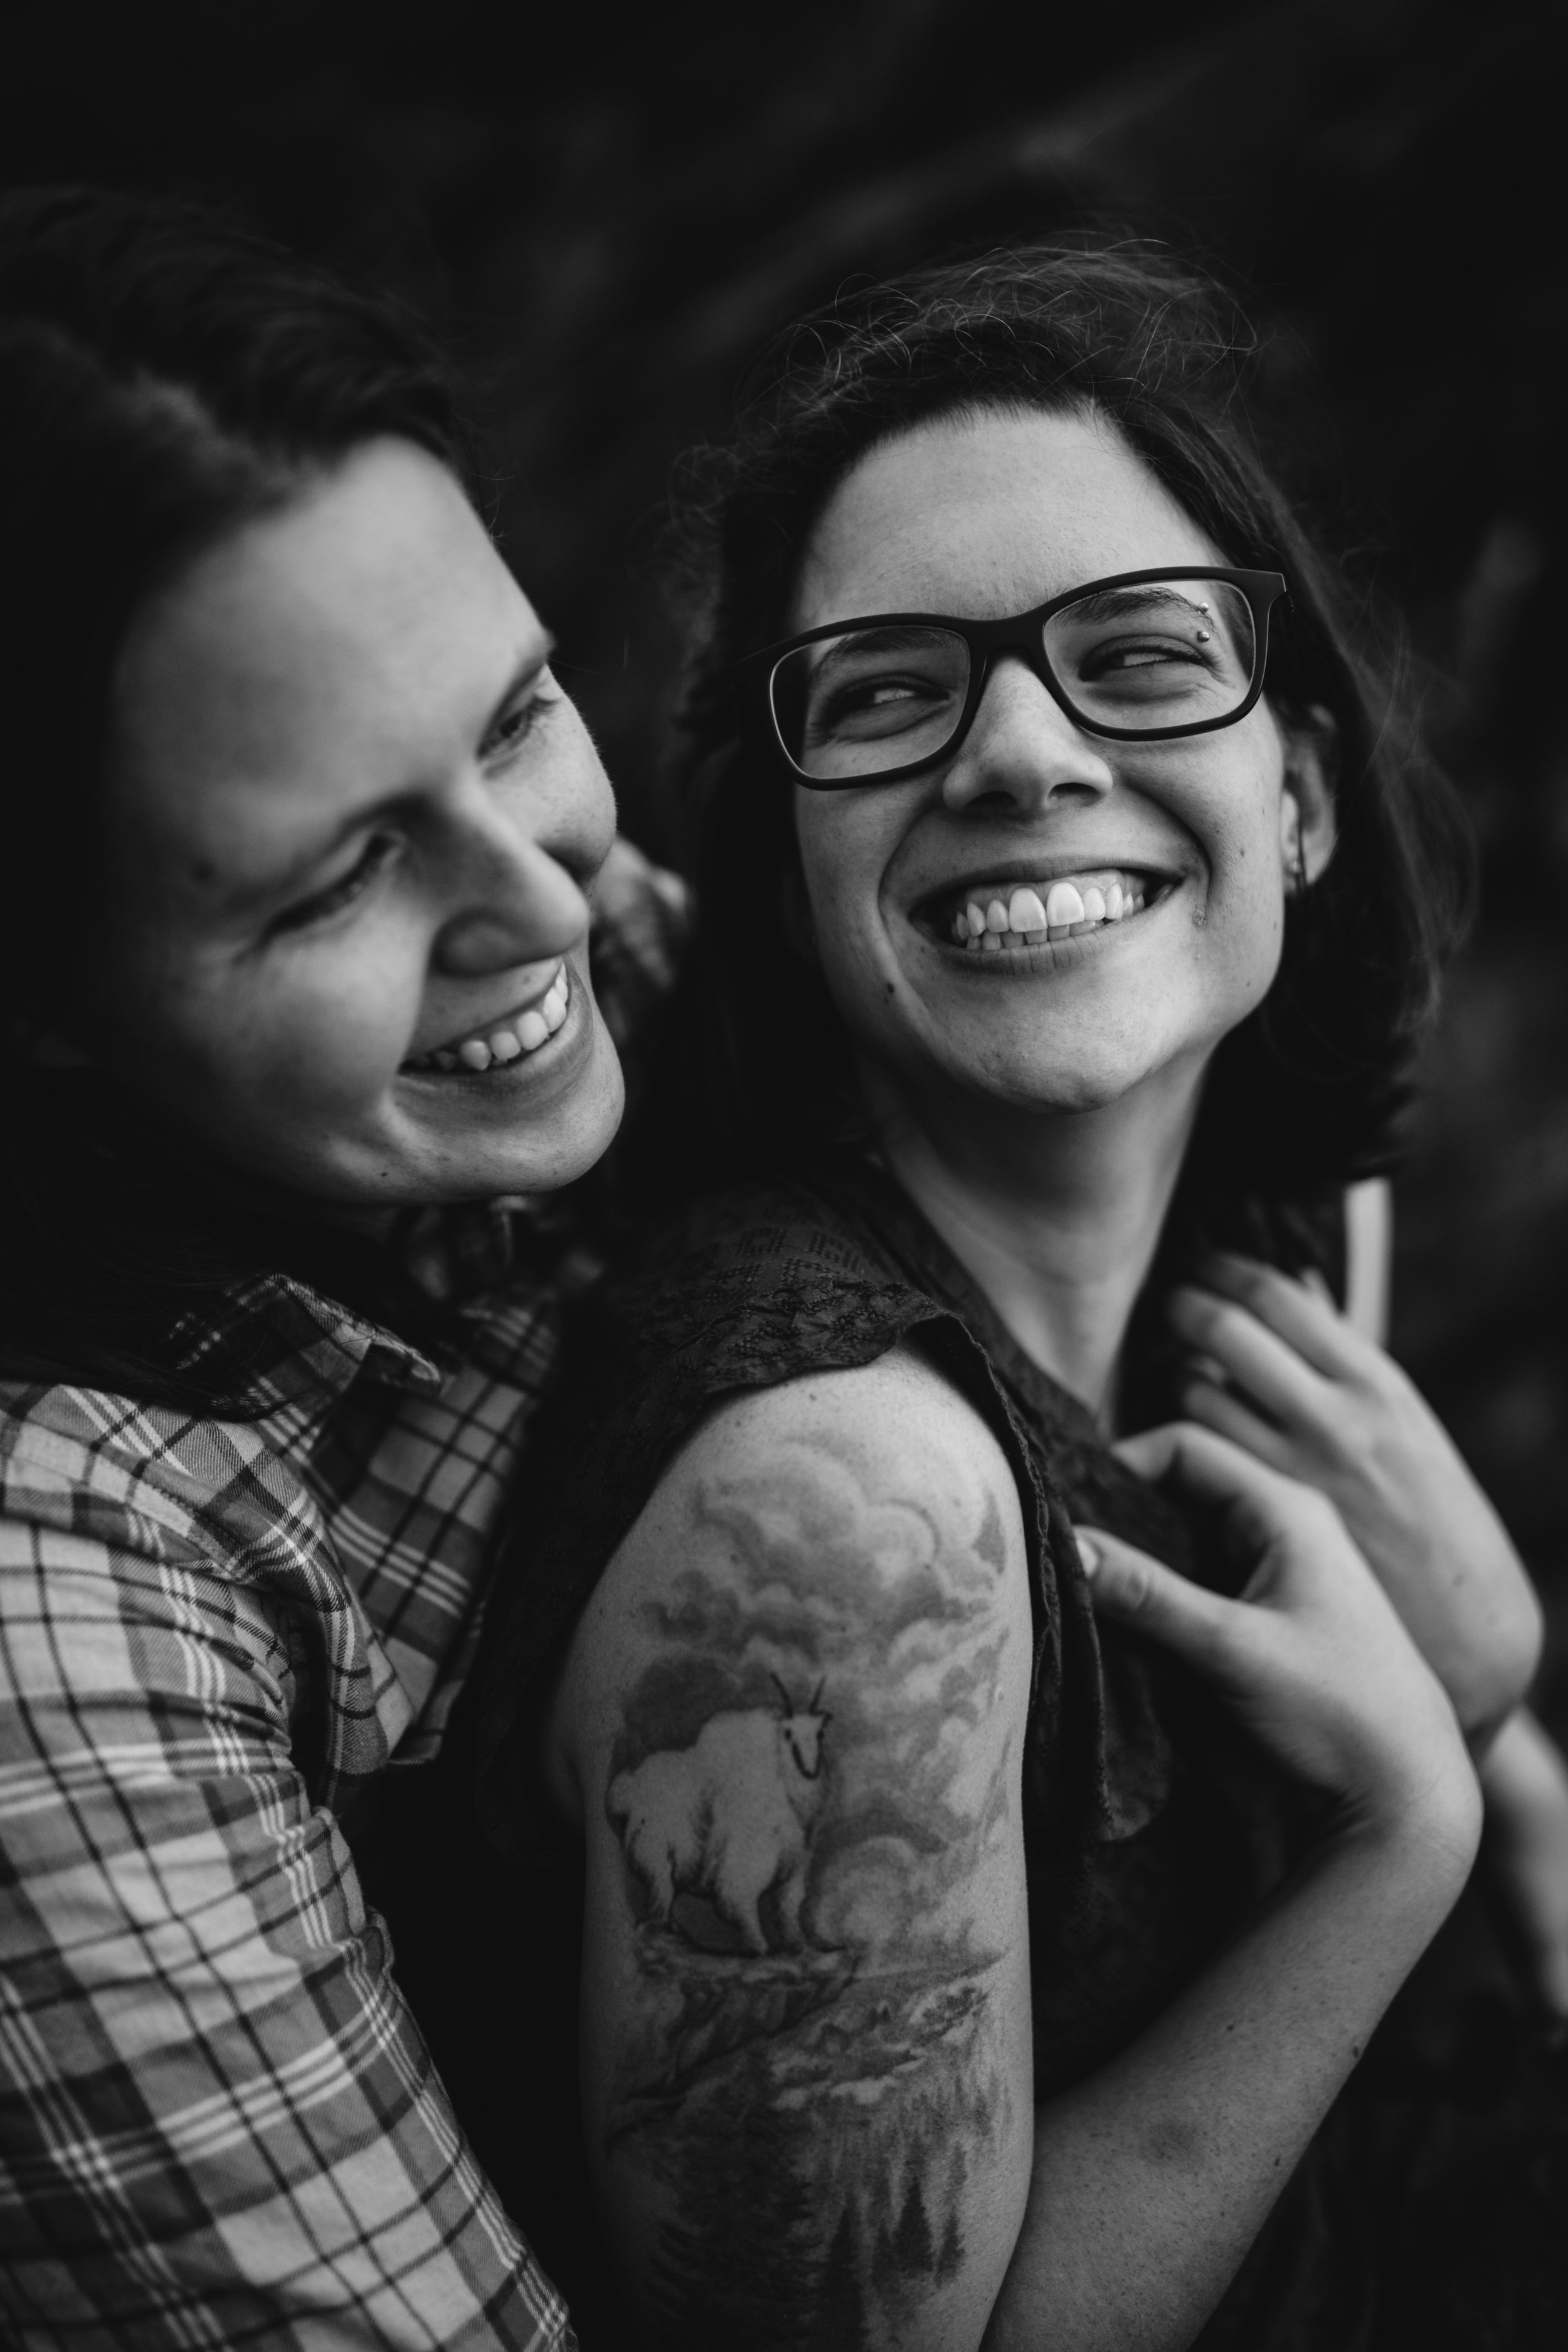 Feminist Wedding Photography Carly Romeo Photography Richmond VA Charlottesville Humpback Rock Hike Dogs Engagement Skyline Queer Women Smile Black and White